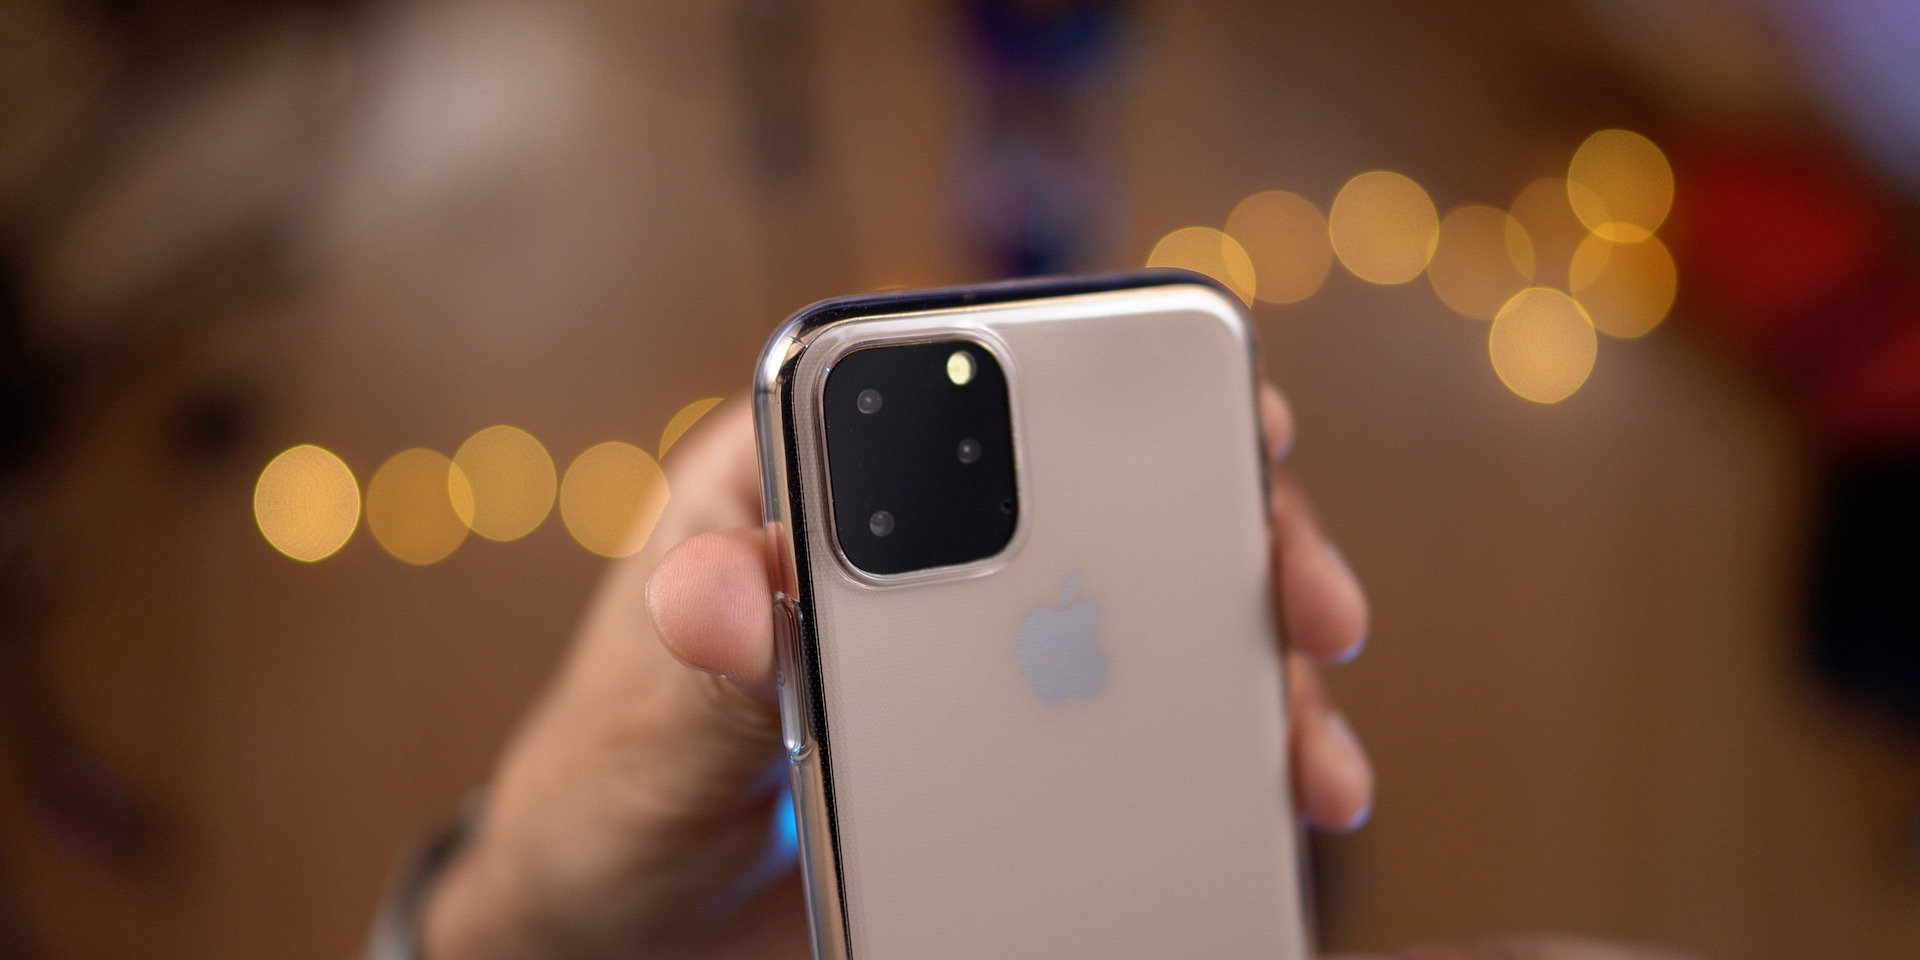 Maquete do iPhone 11 no caso